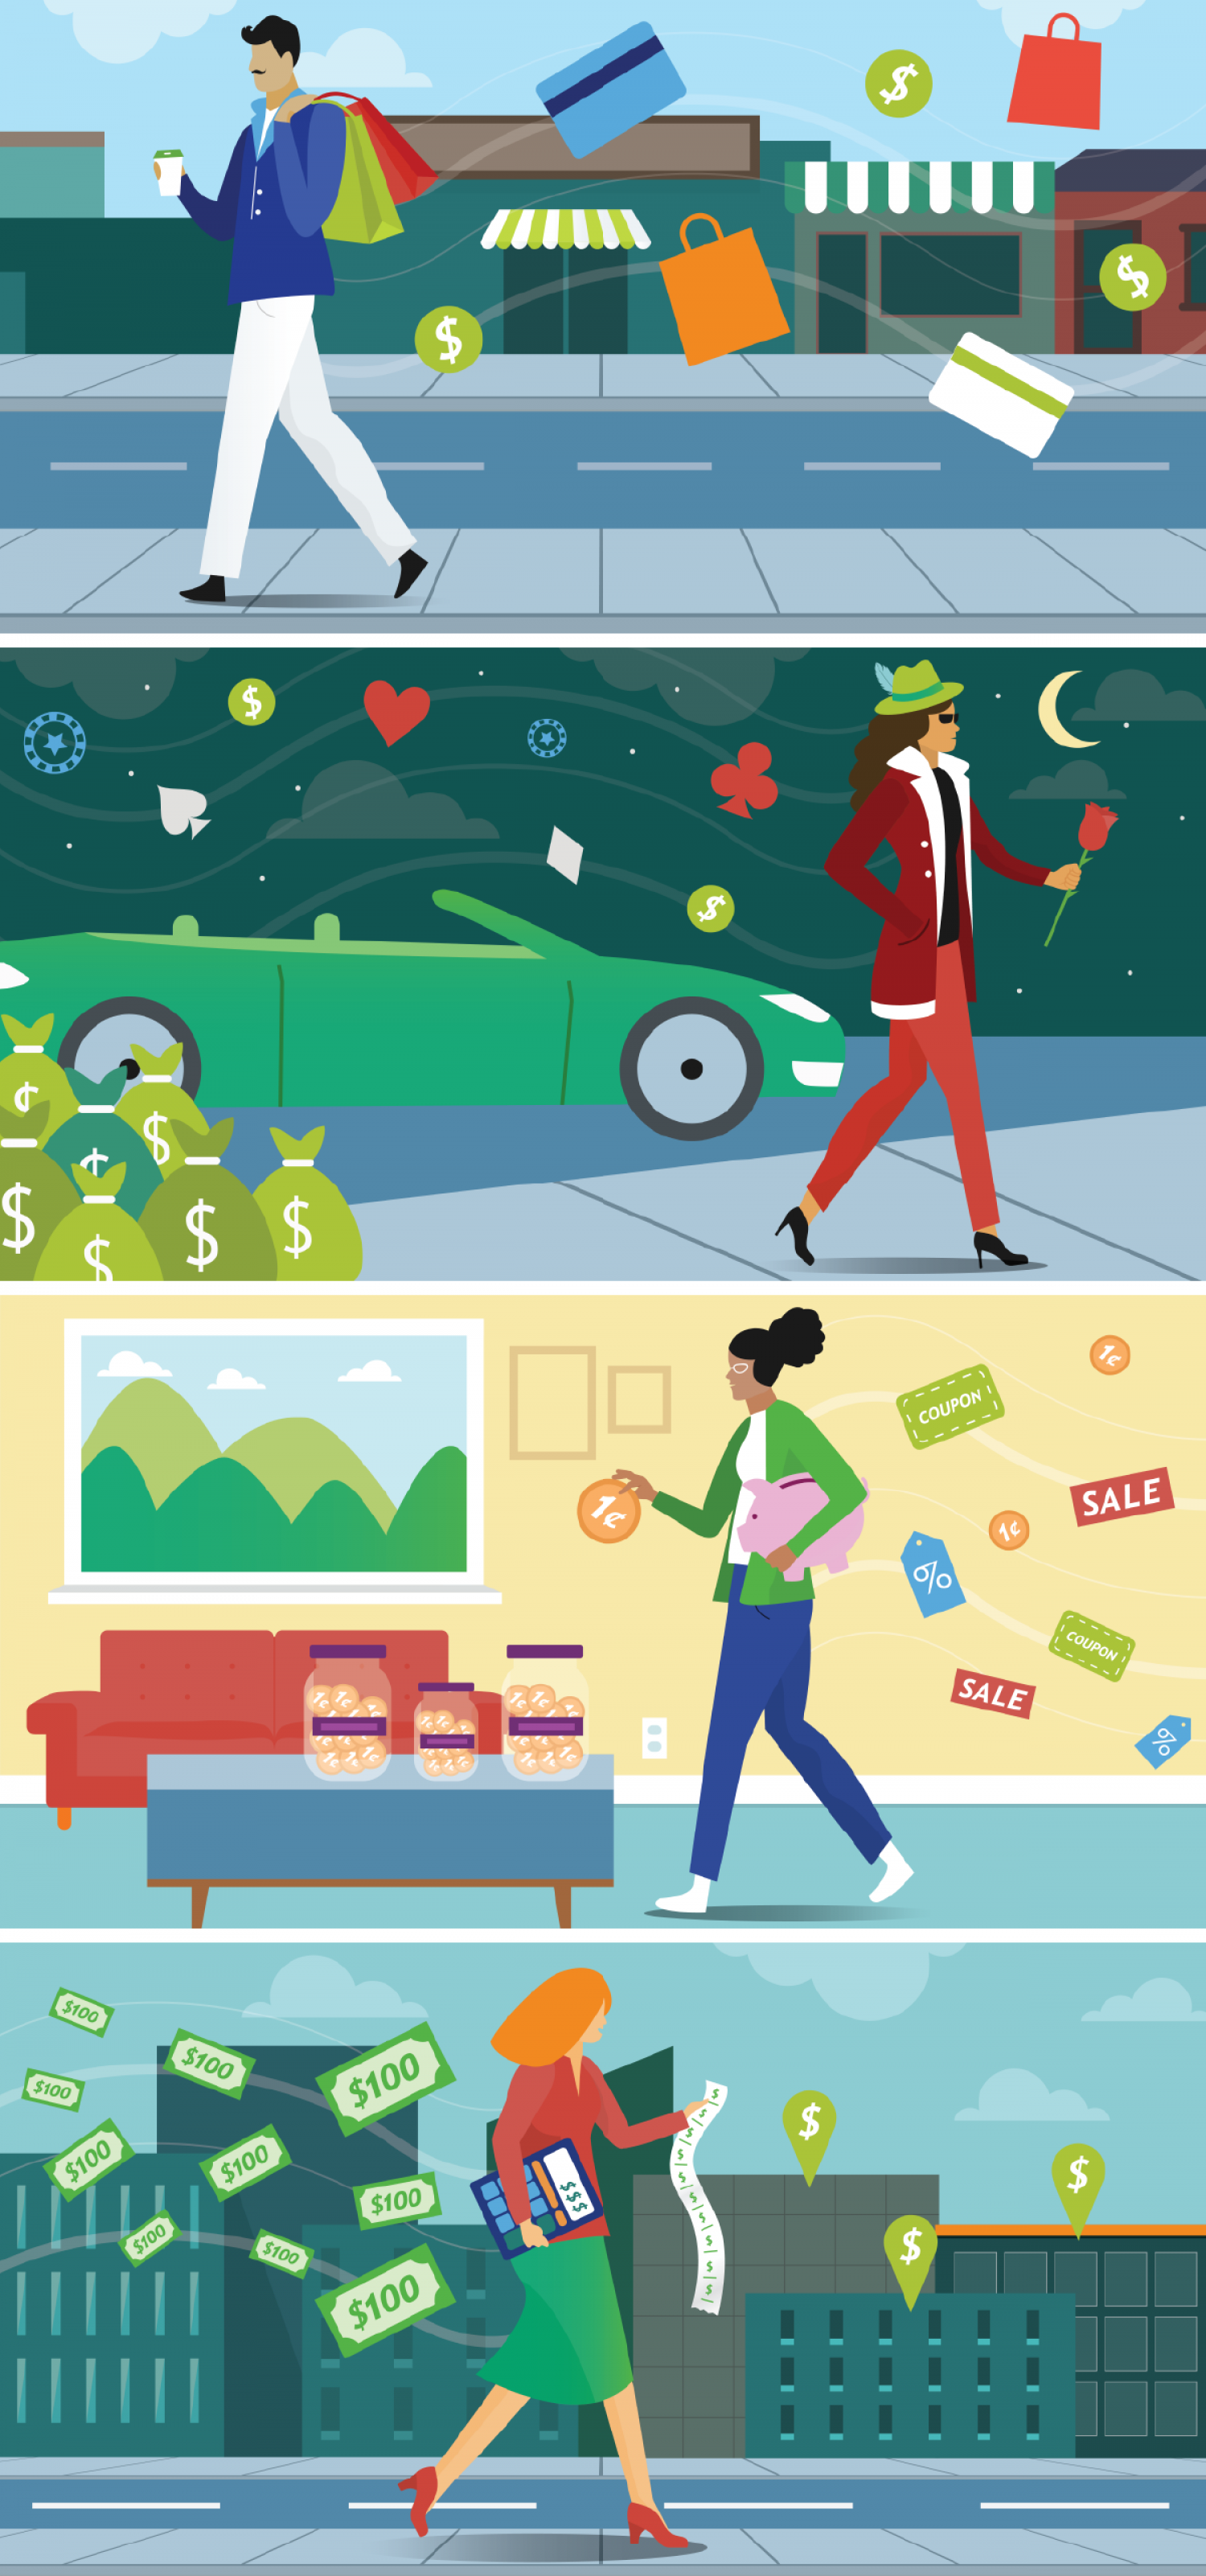 Are you extra or frugal? Infographic